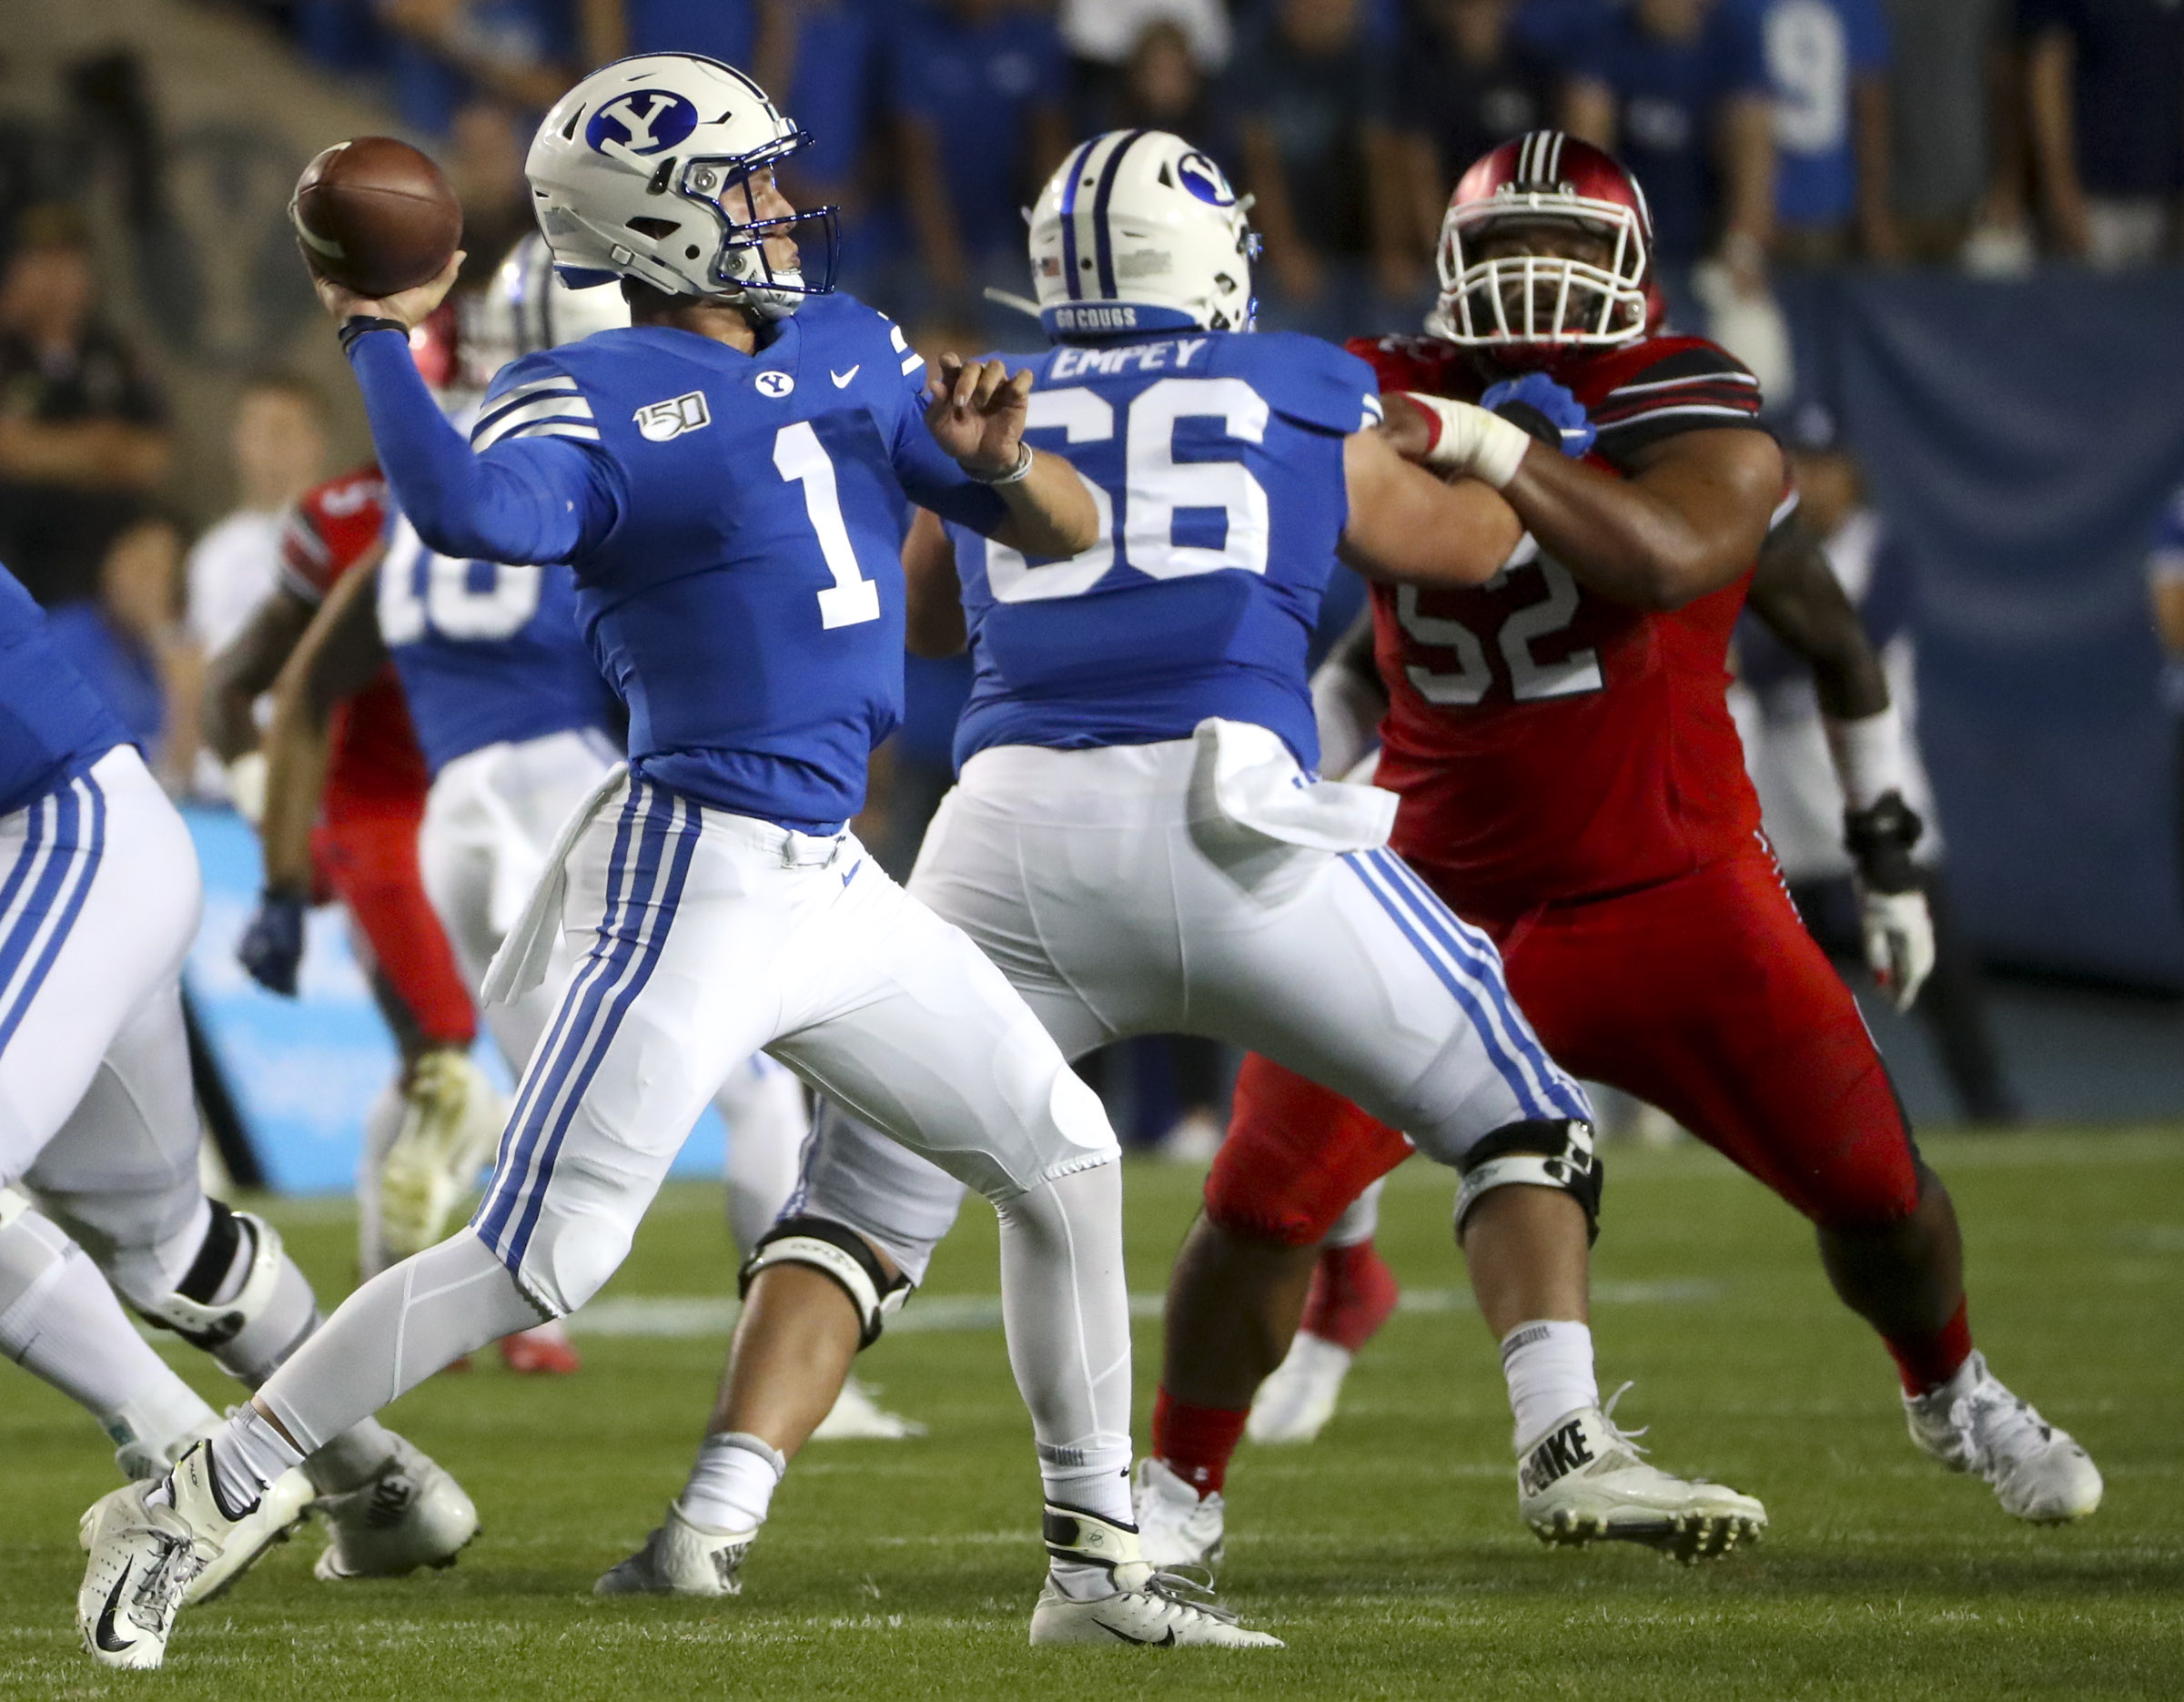 BYU quarterback Zach Wilson fires a pass during the Utah-BYU football game at LaVell Edwards Stadium in Provo on Thursday, Aug. 29, 2019.